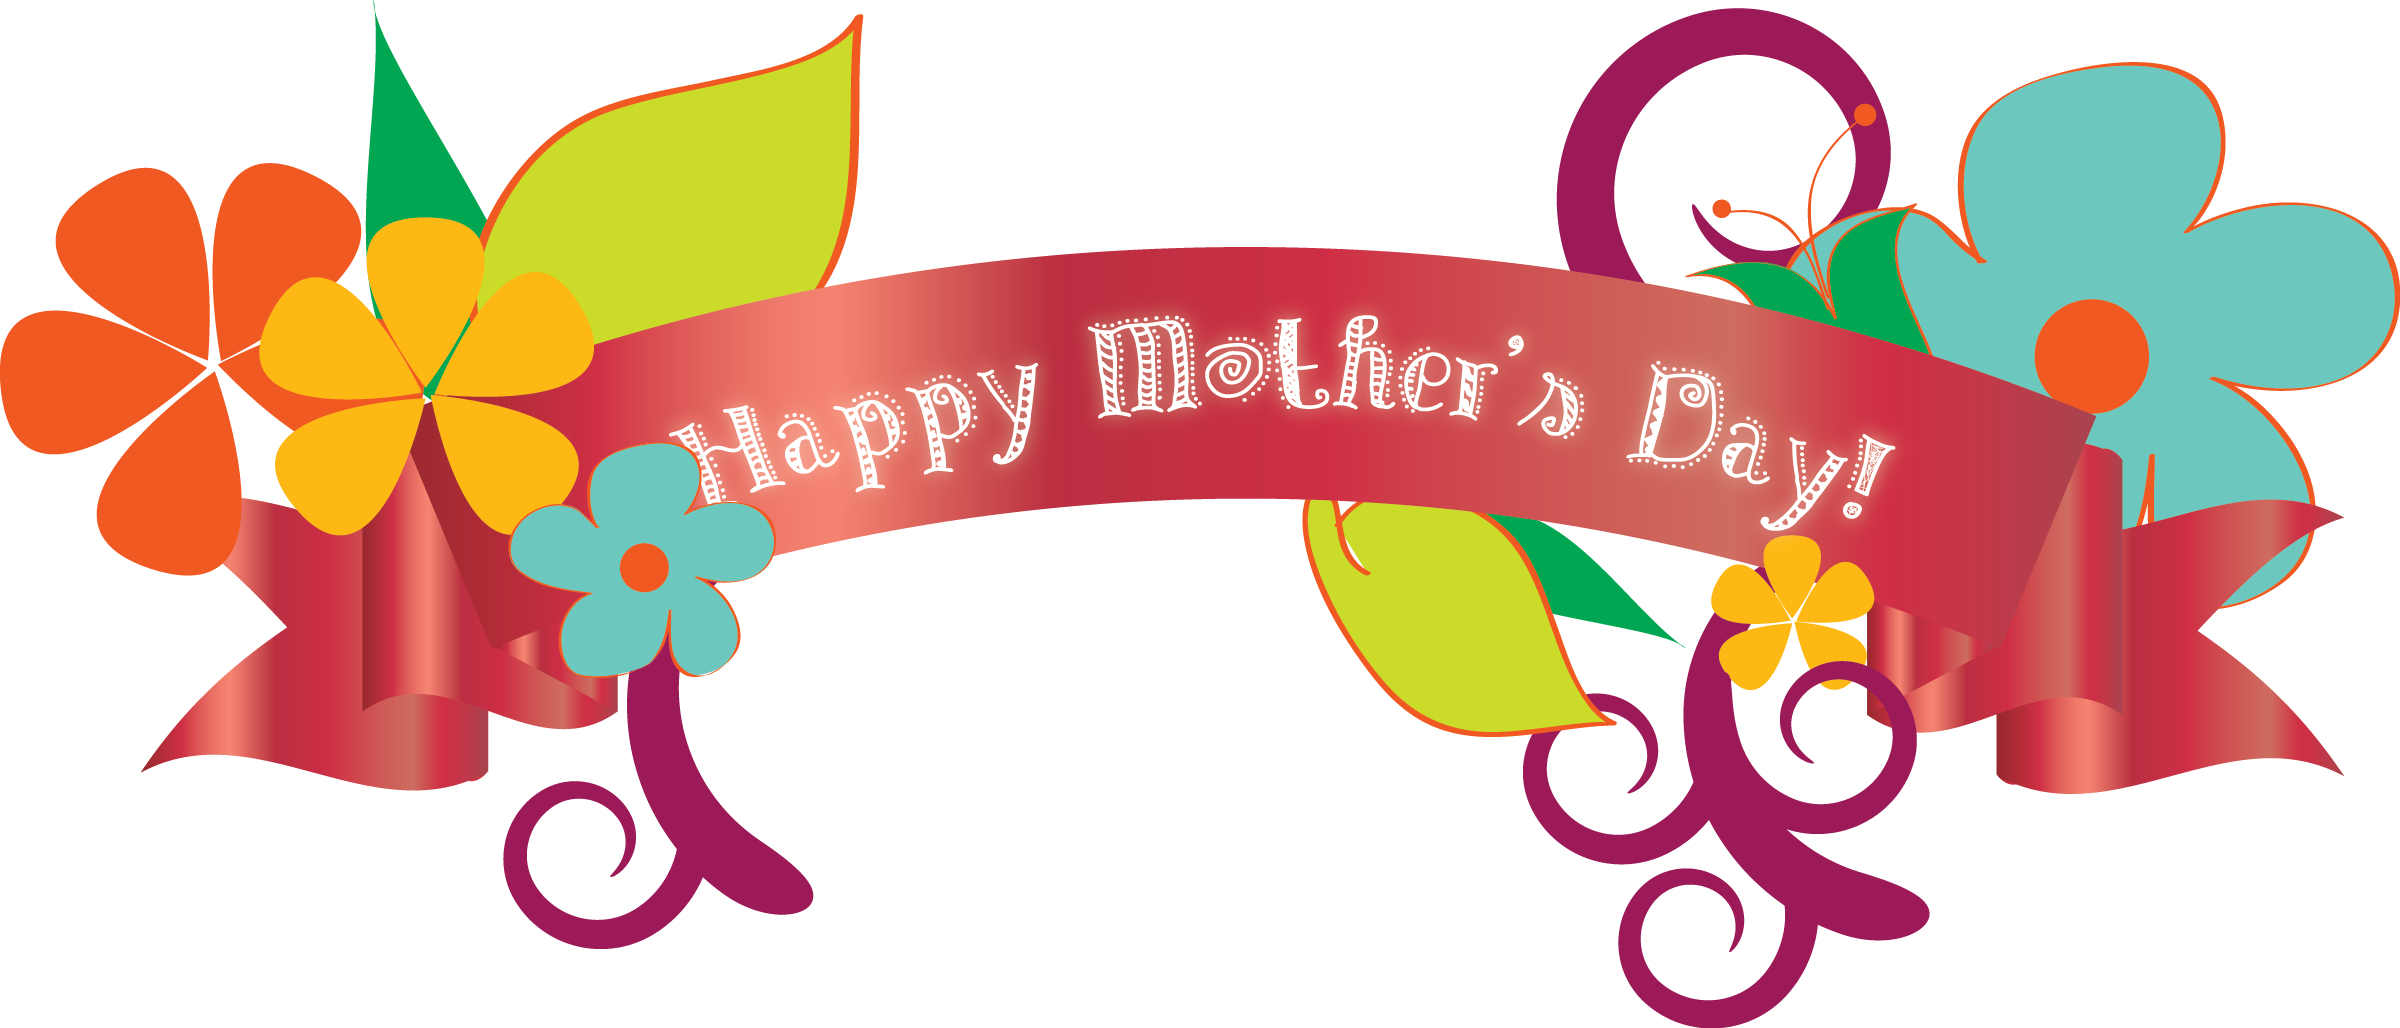 Transparant happy mothers day clipart jpg library Happy Mothers Day Clipart | Free download best Happy Mothers Day ... jpg library